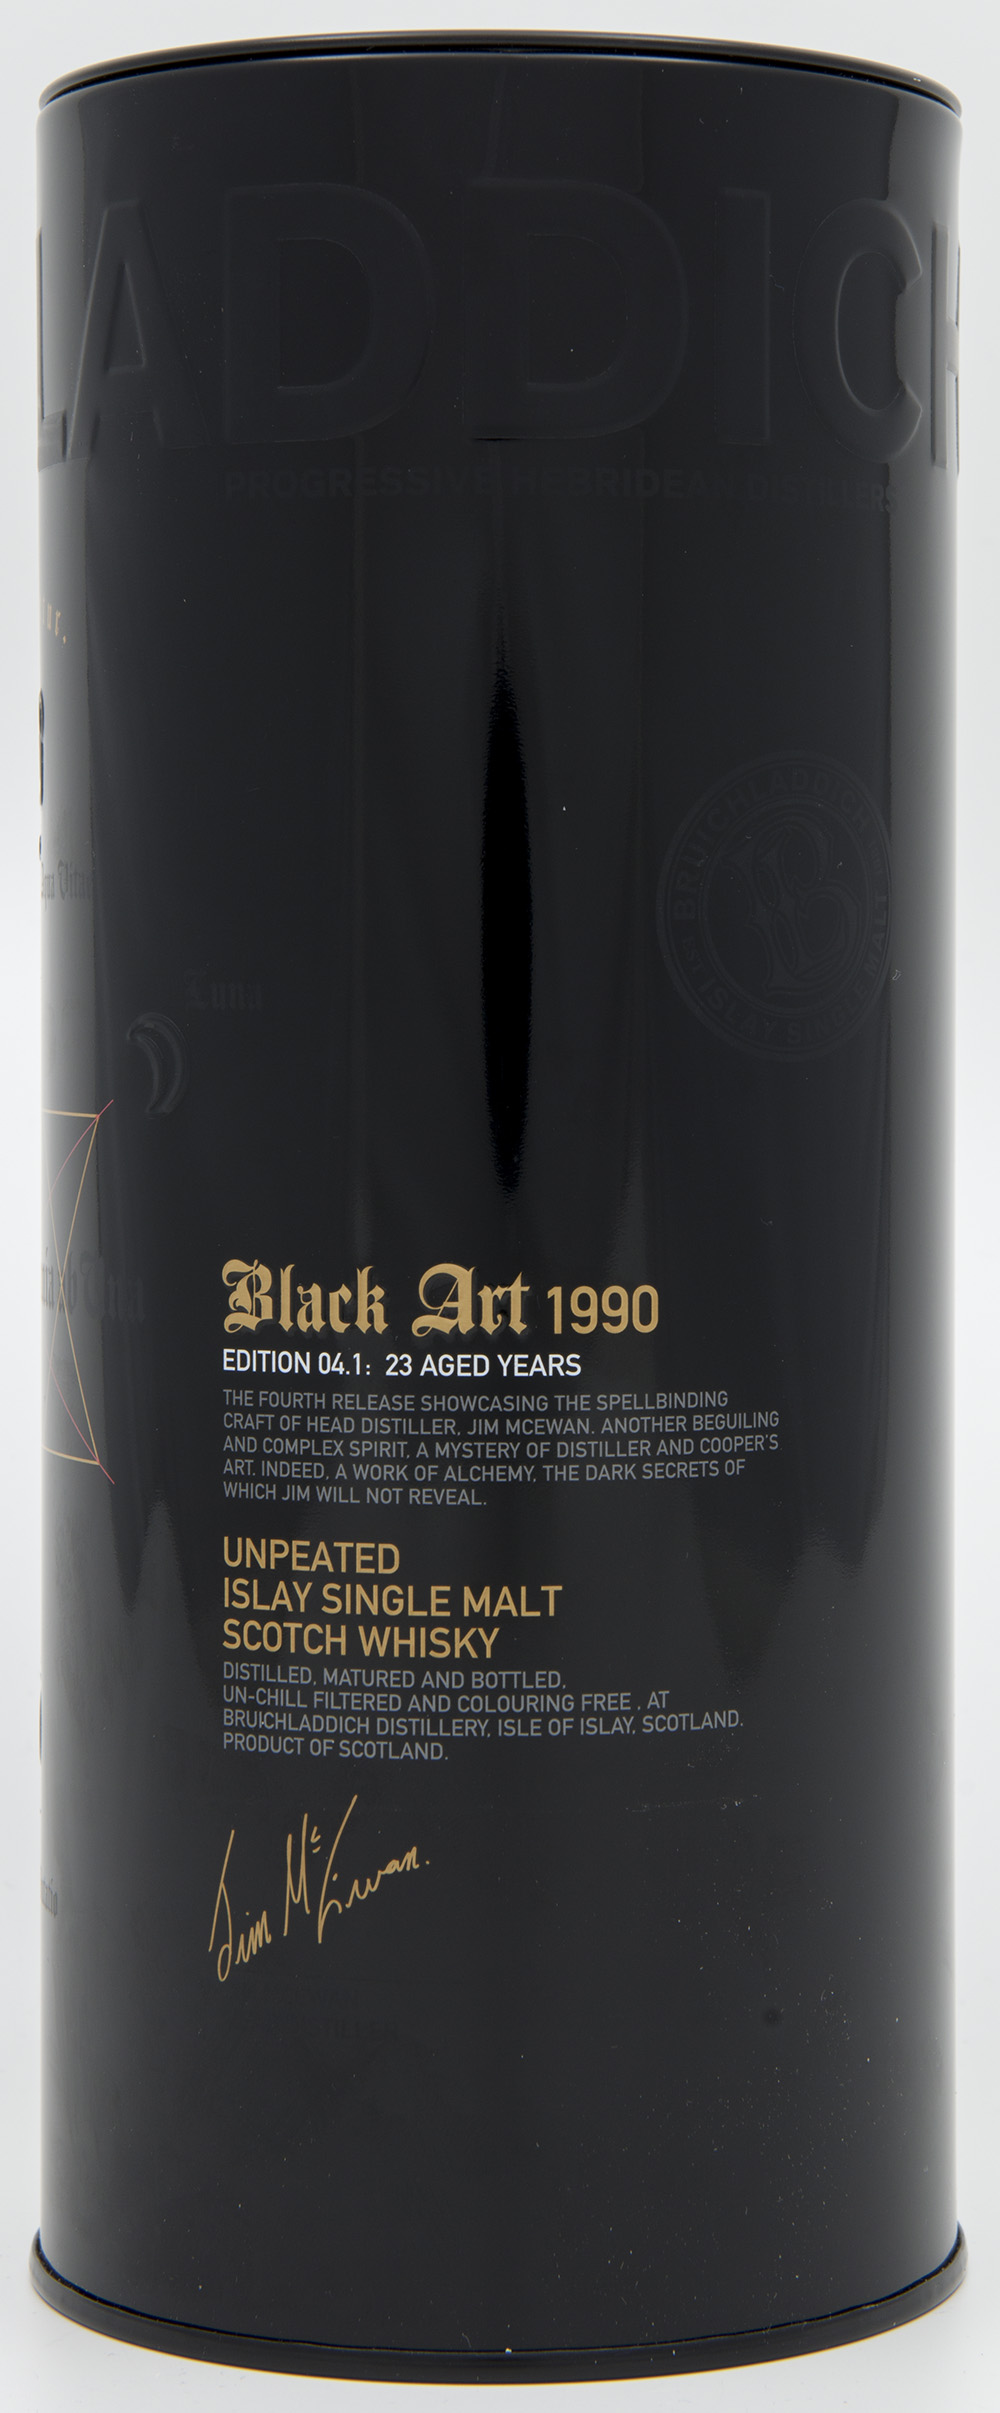 Billede: DSC_6181 - Bruichladdich Black Art 1990 - Edition 04.1 - 23 years - tube front.jpg